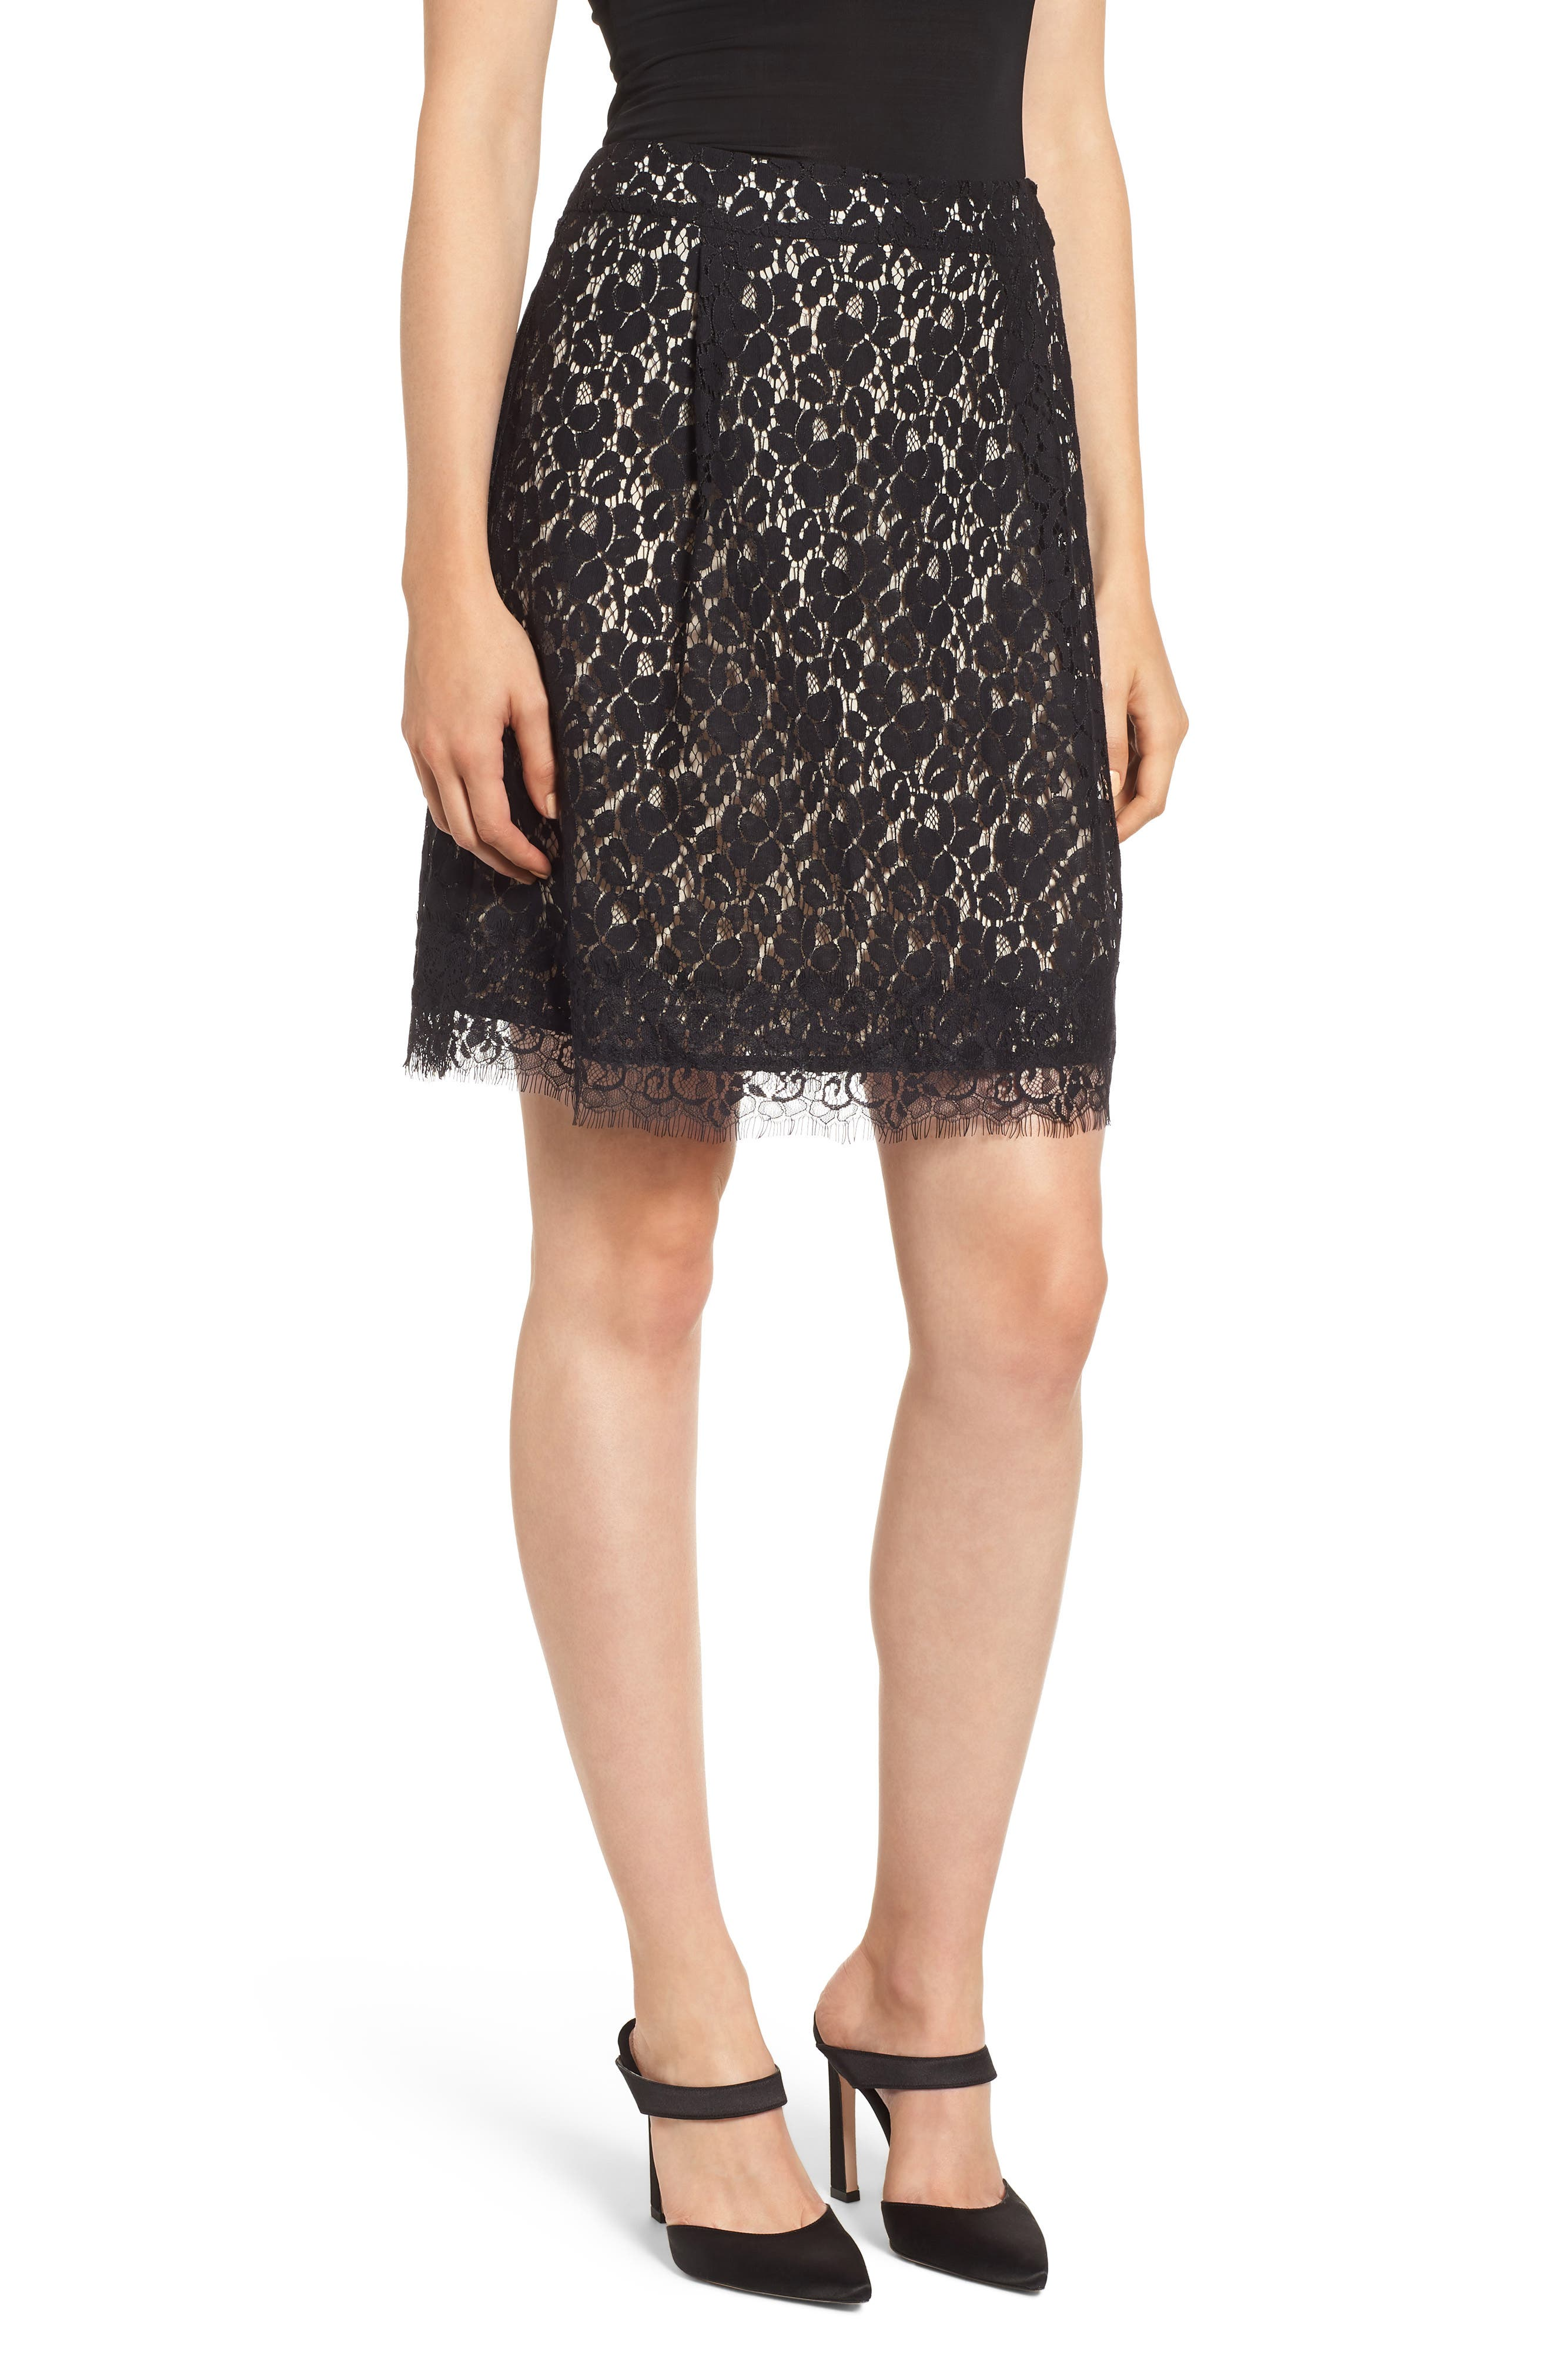 GIBSON,                             x Glam Squad Lace Skirt,                             Main thumbnail 1, color,                             017